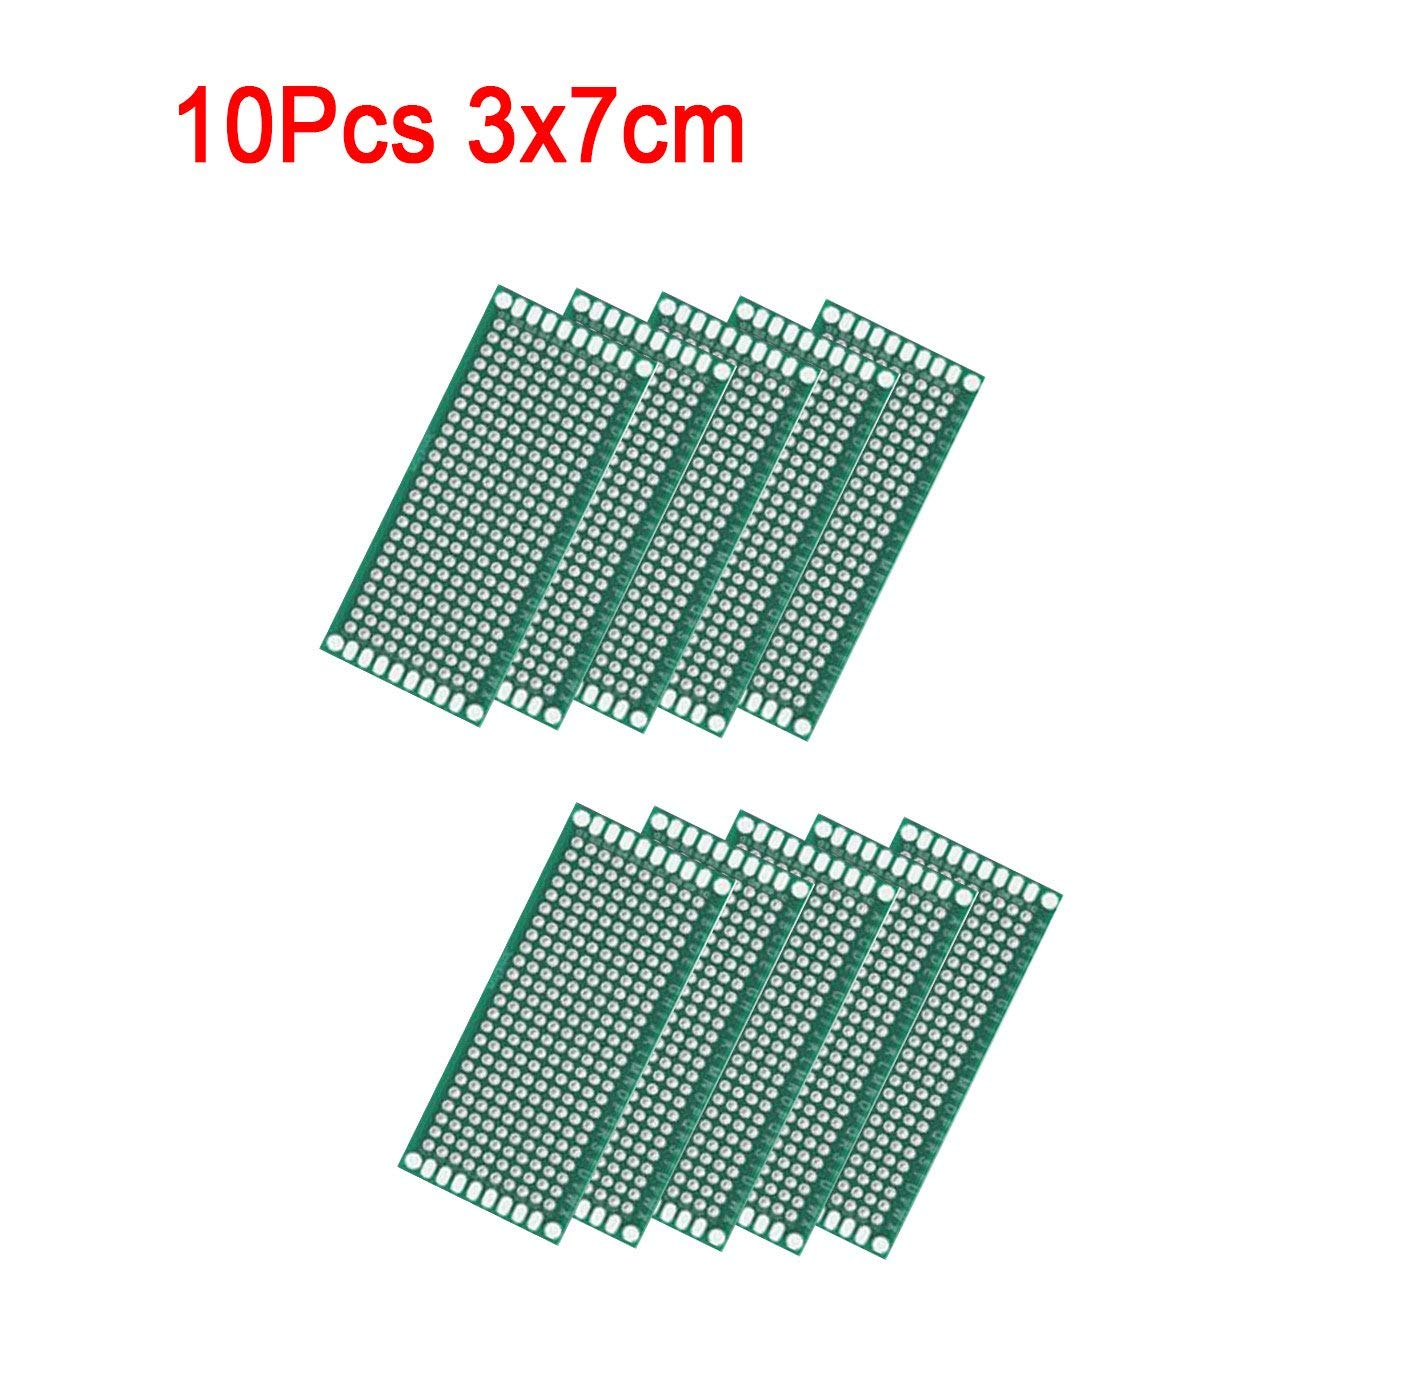 Cheap Double Sided Pcb Soldering Find Doubleside Prototype Universal Printed Circuit Board Electronics Get Quotations Karcy 10pcs For Diy And Electronic